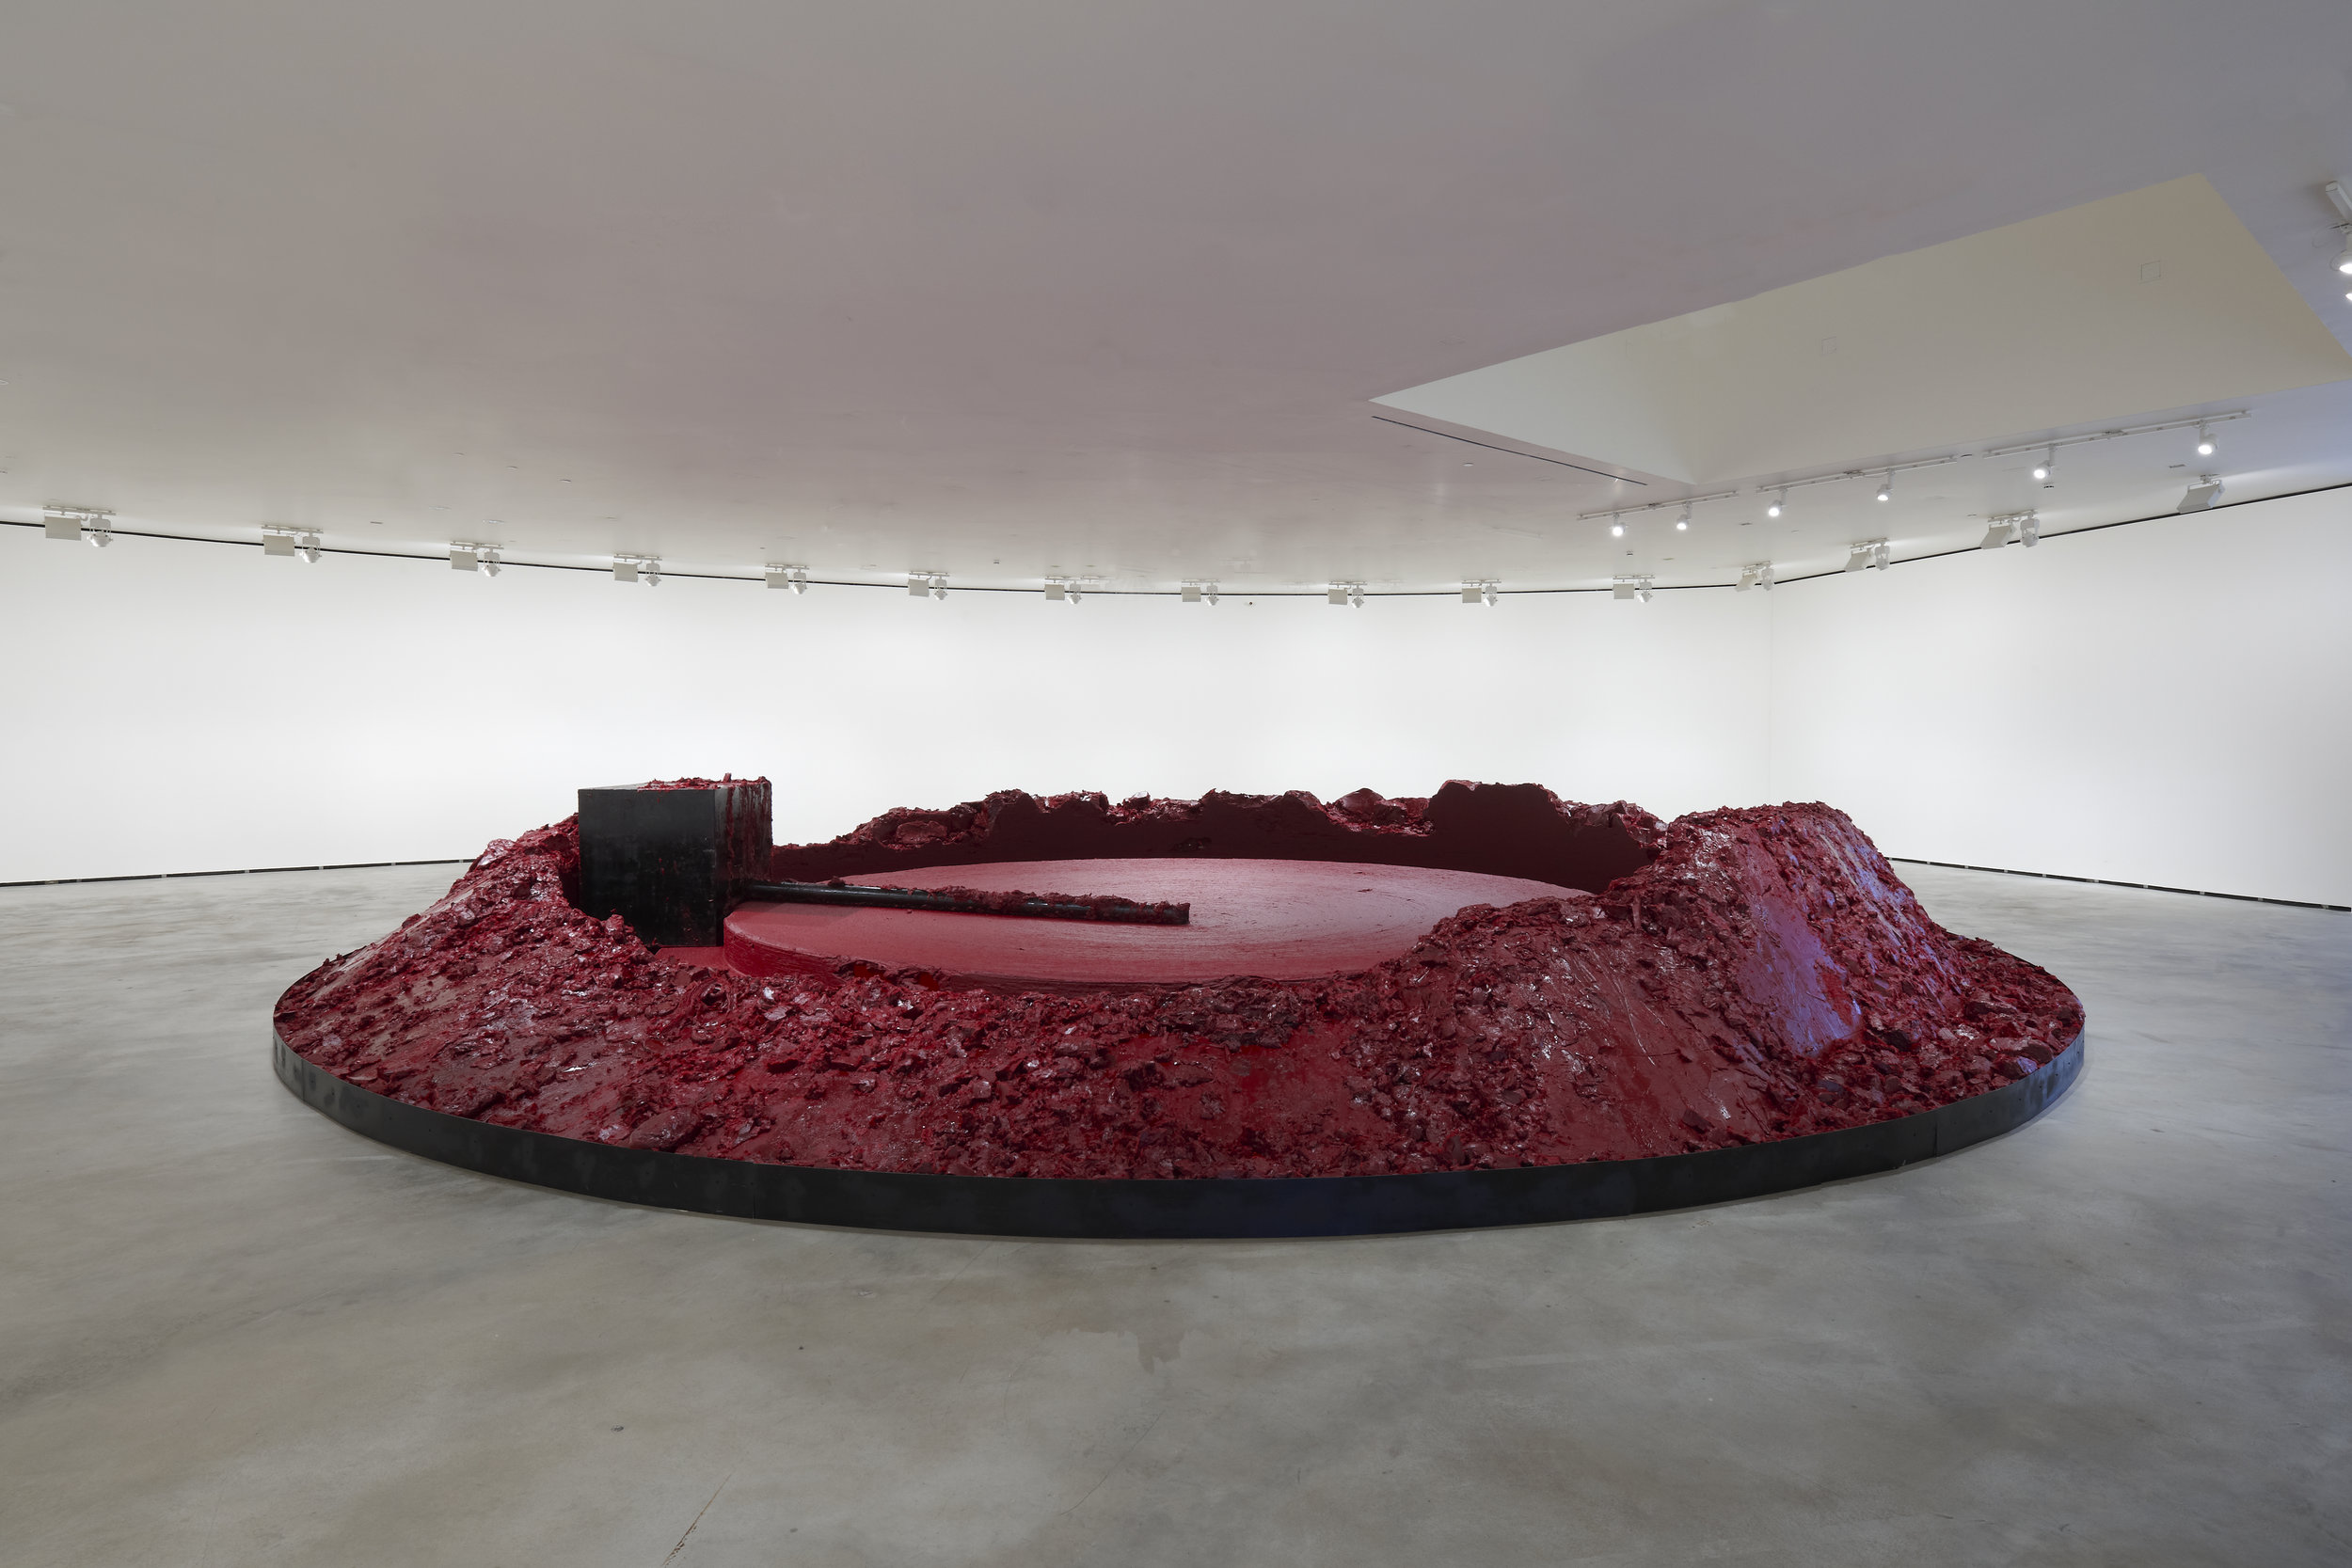 Anish Kapoor My Red Homeland, 2003 Wax, oil-based paint, motor, and steel  Diameter: 12 m, height variableEdition 1/1, 1 A.P. Guggenheim Abu Dhabi  © Anish Kapoor, Courtesy Lisson Gallery  Photo: Dave Morgan